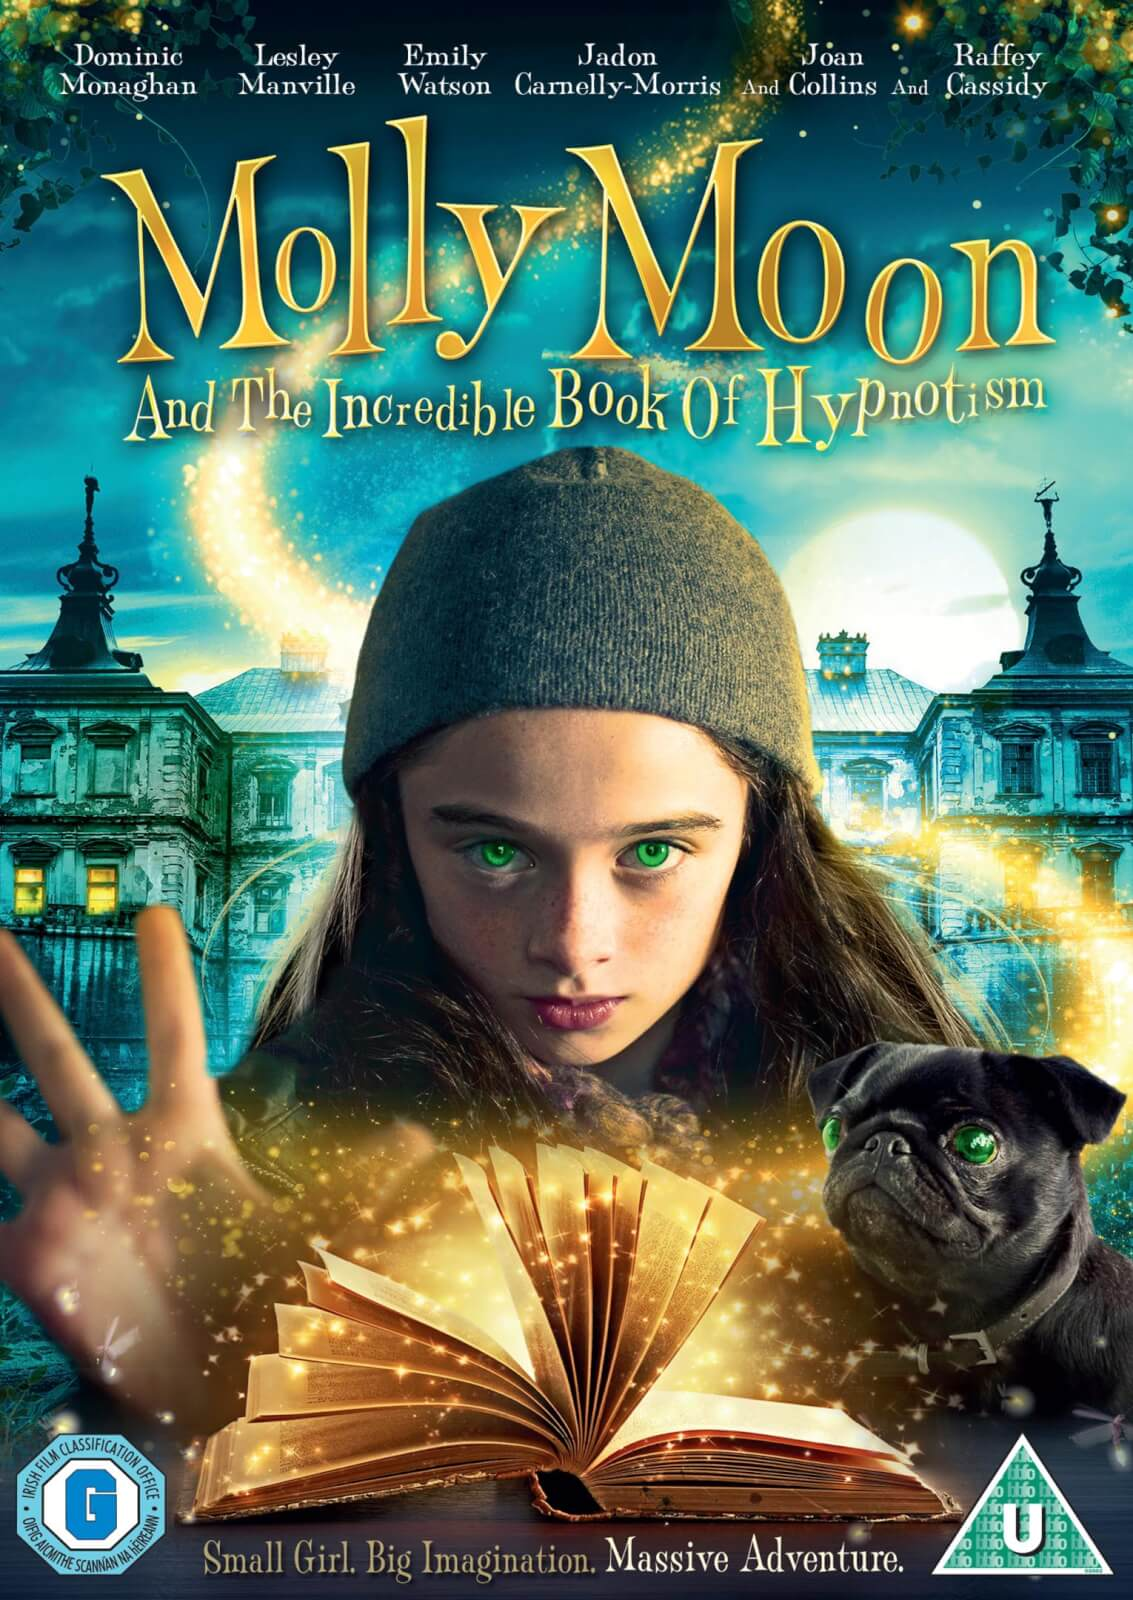 Molly Moon & The Incredible Book of Hypnotism